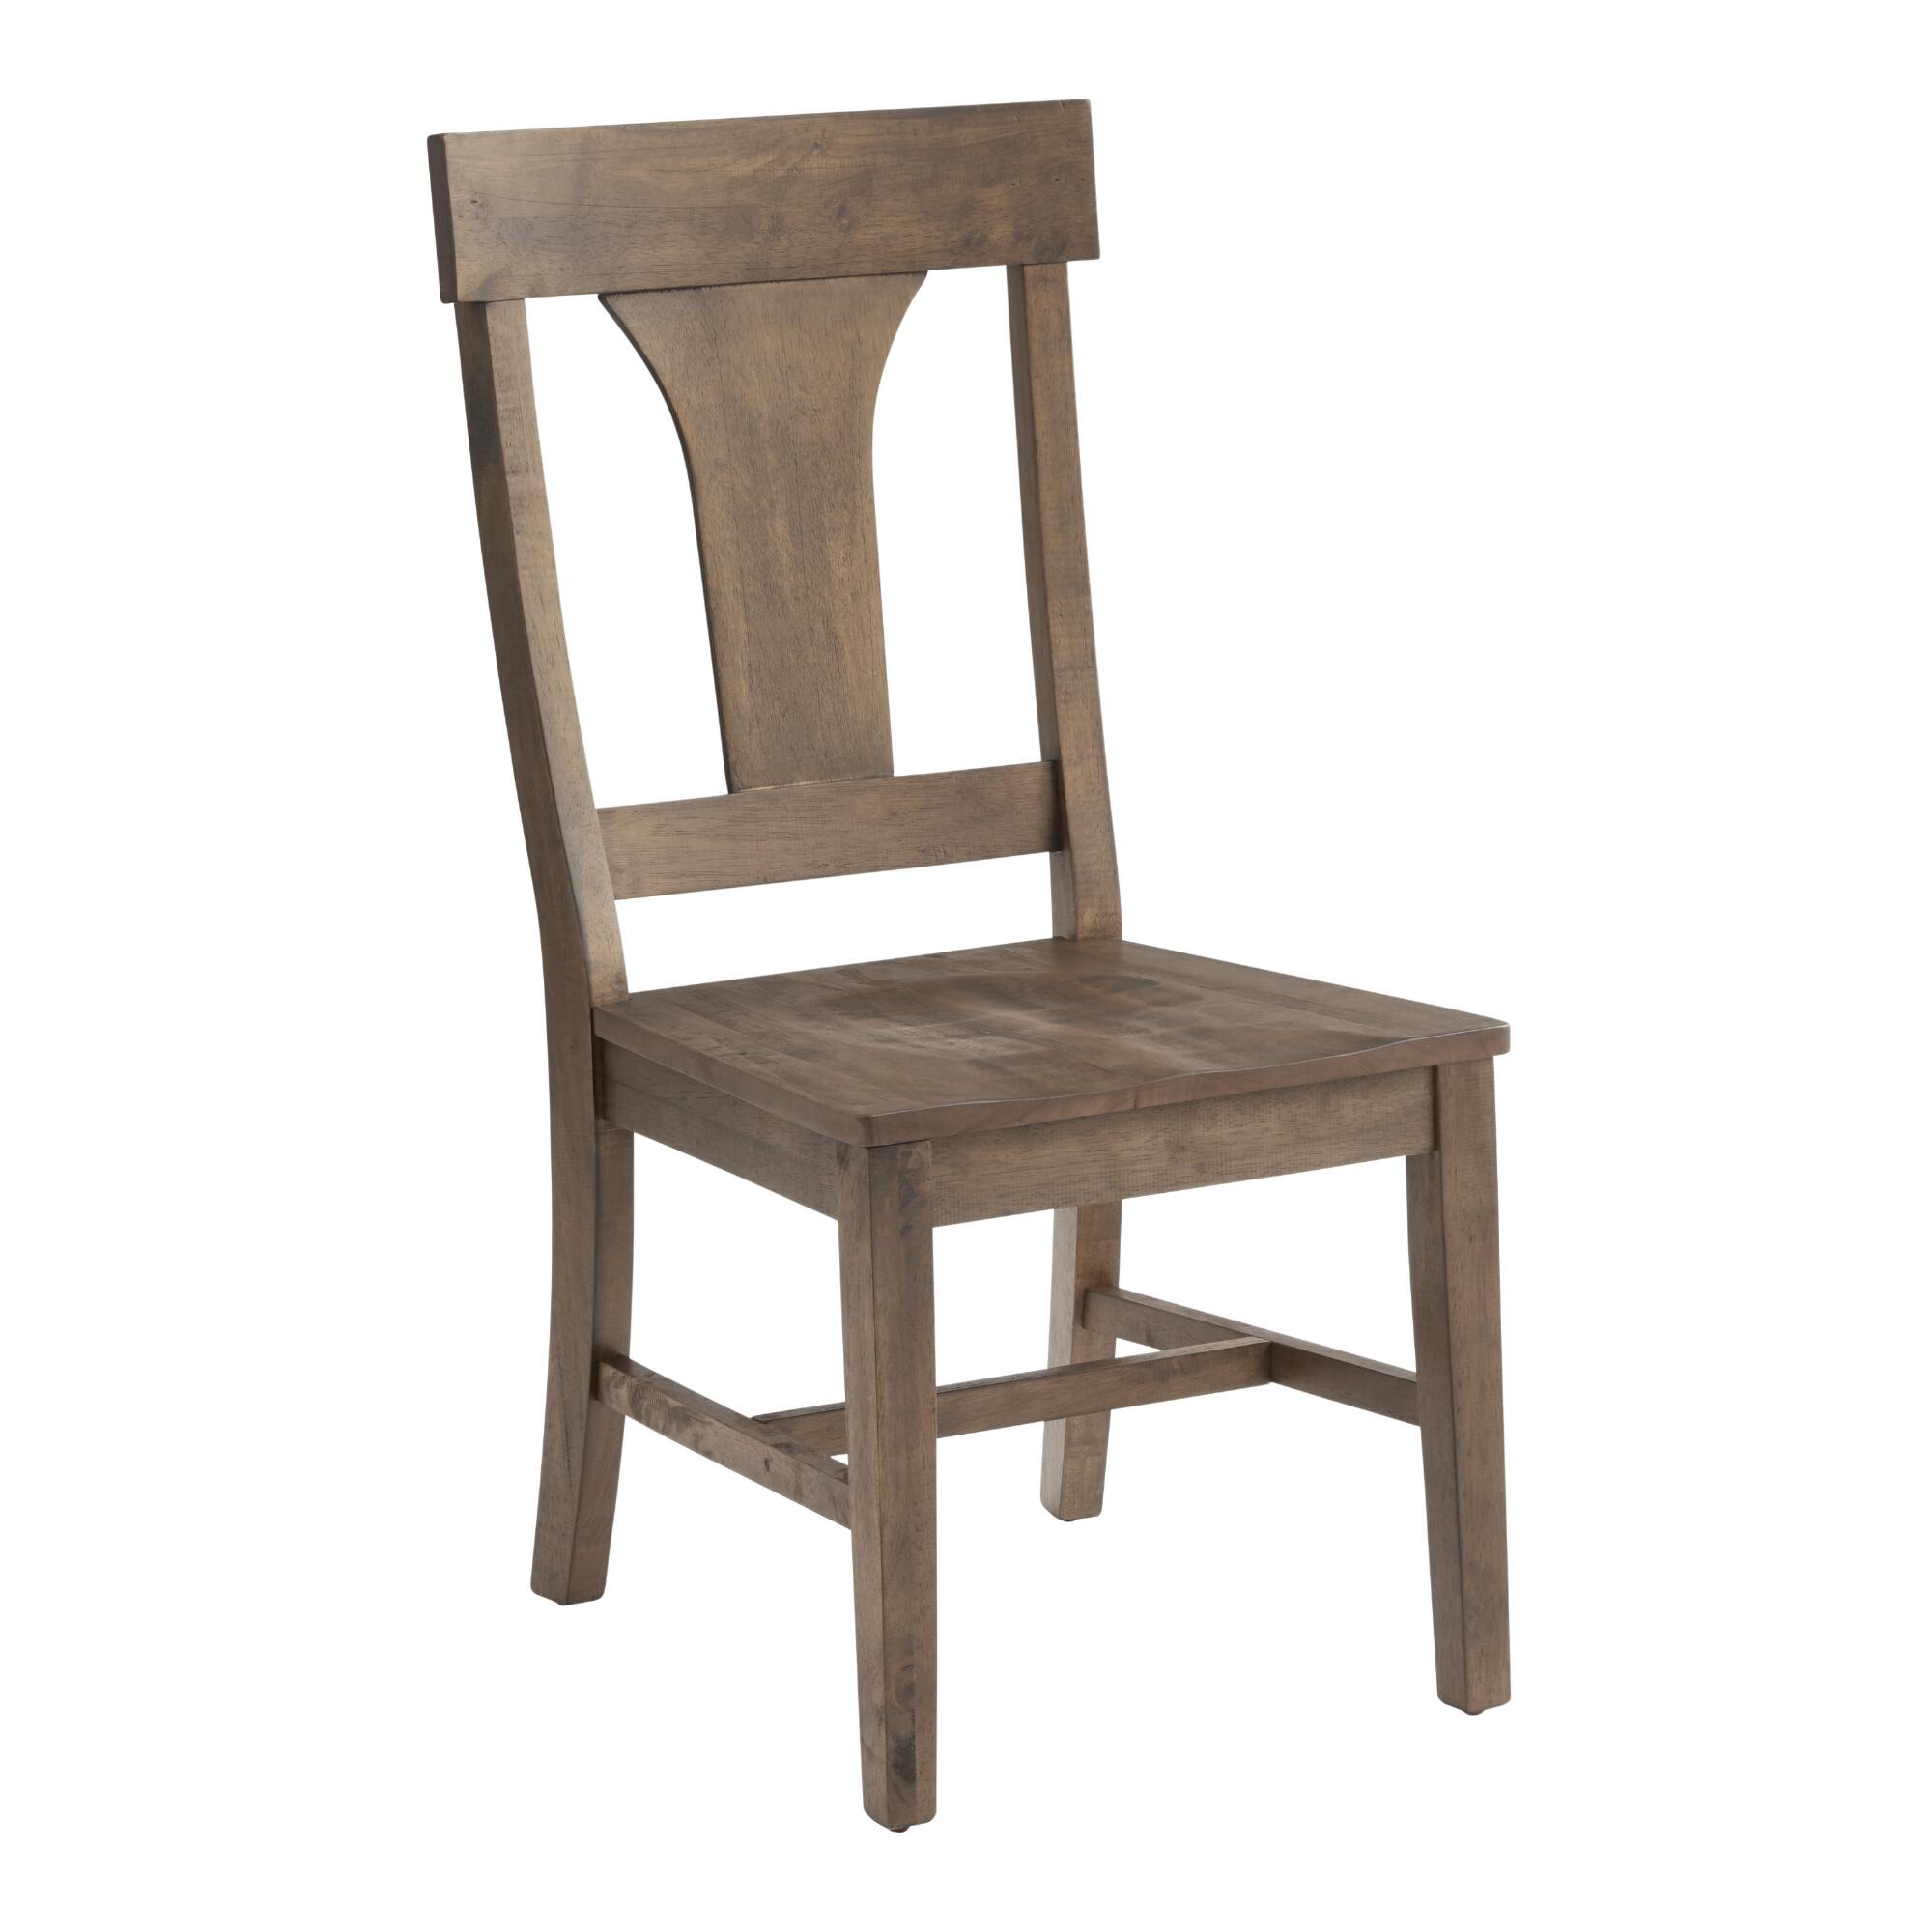 Rustic wood brinley dining chairs set of 2 world market for 2 dining room chairs